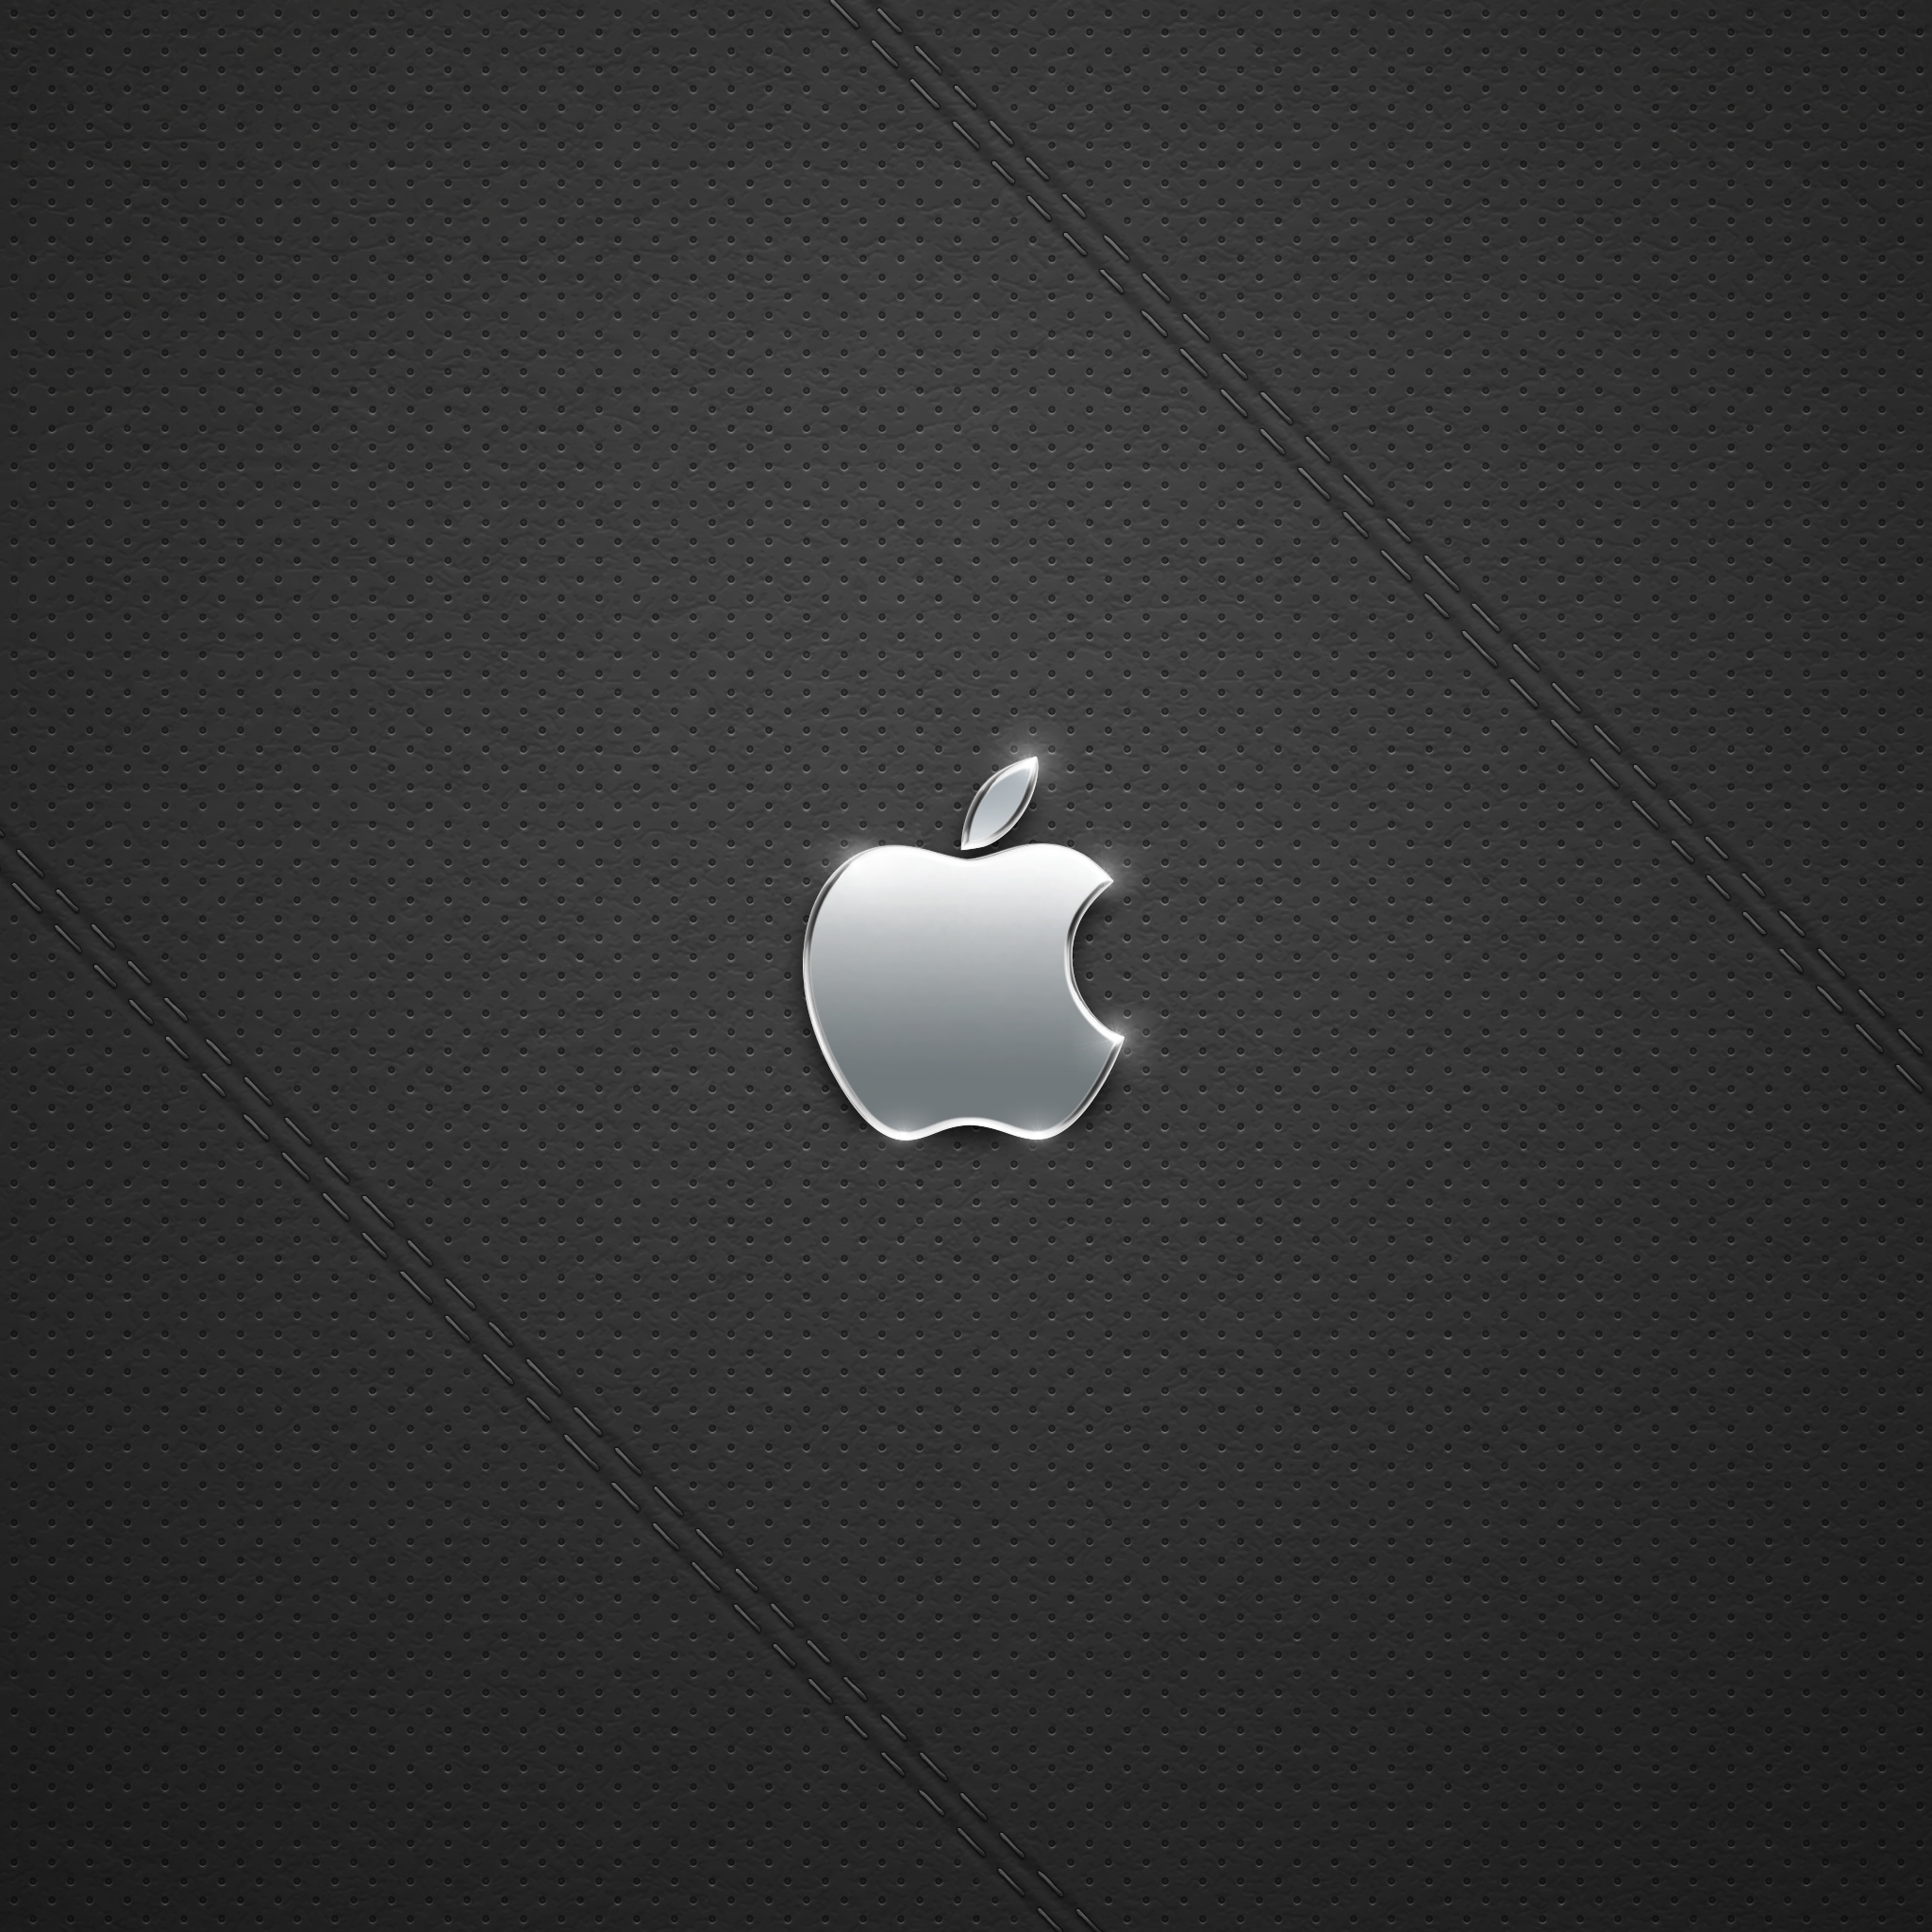 ipad 4 wallpapers, wallpaper for 4th generation ipad